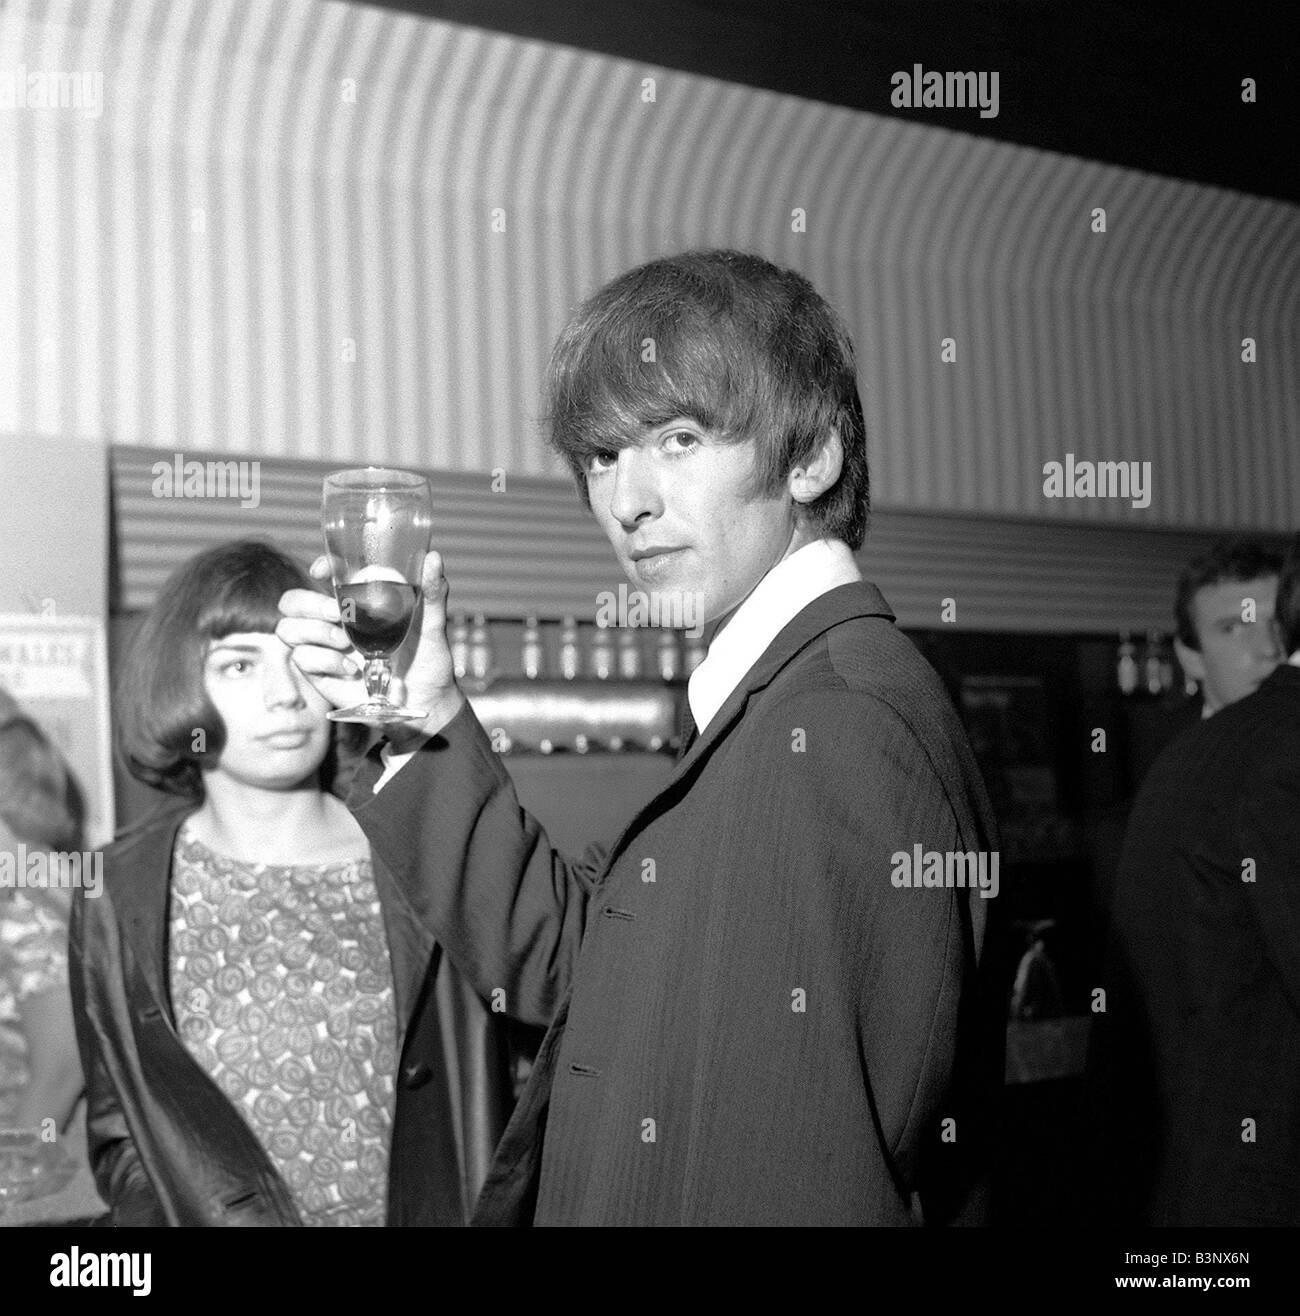 The Beatles May 1964 George Harrison Raises His Glass At Prince Of Wales Theatre Leicester Square London